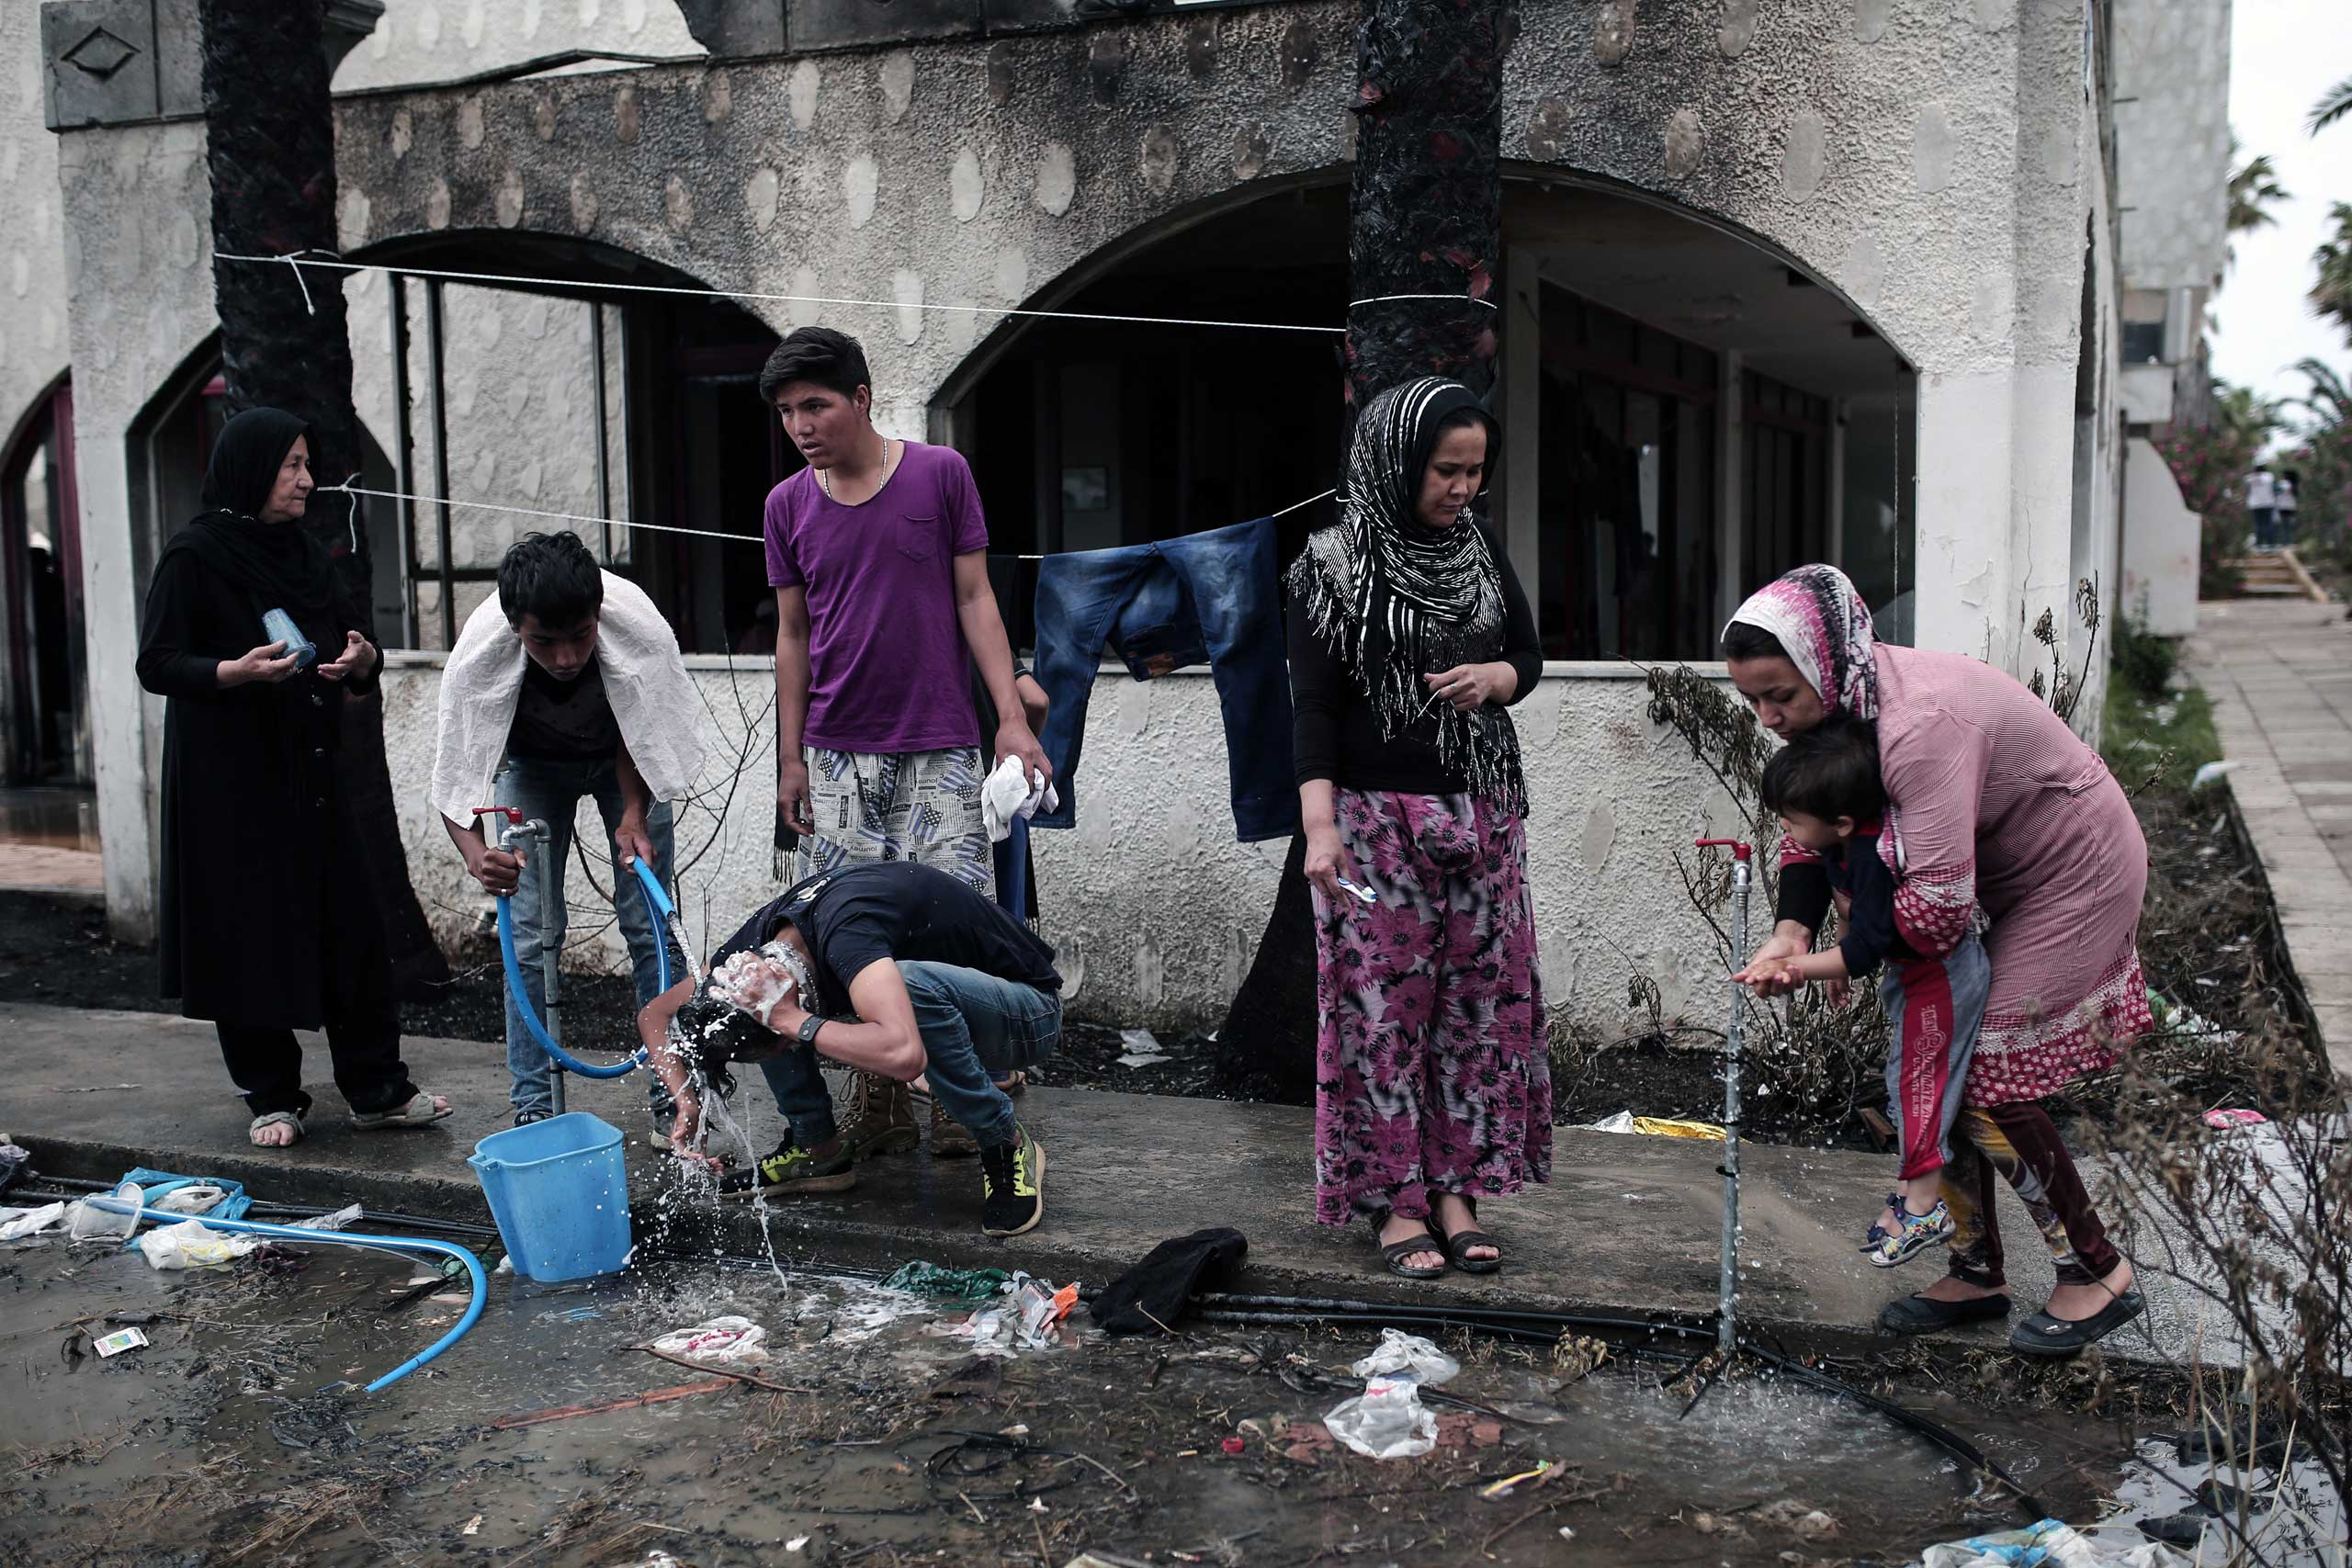 Afghan migrants wash next to a deserted hotel, where hundreds of migrants have found temporary shelter, in the Greek island Kos, May 27, 2015.